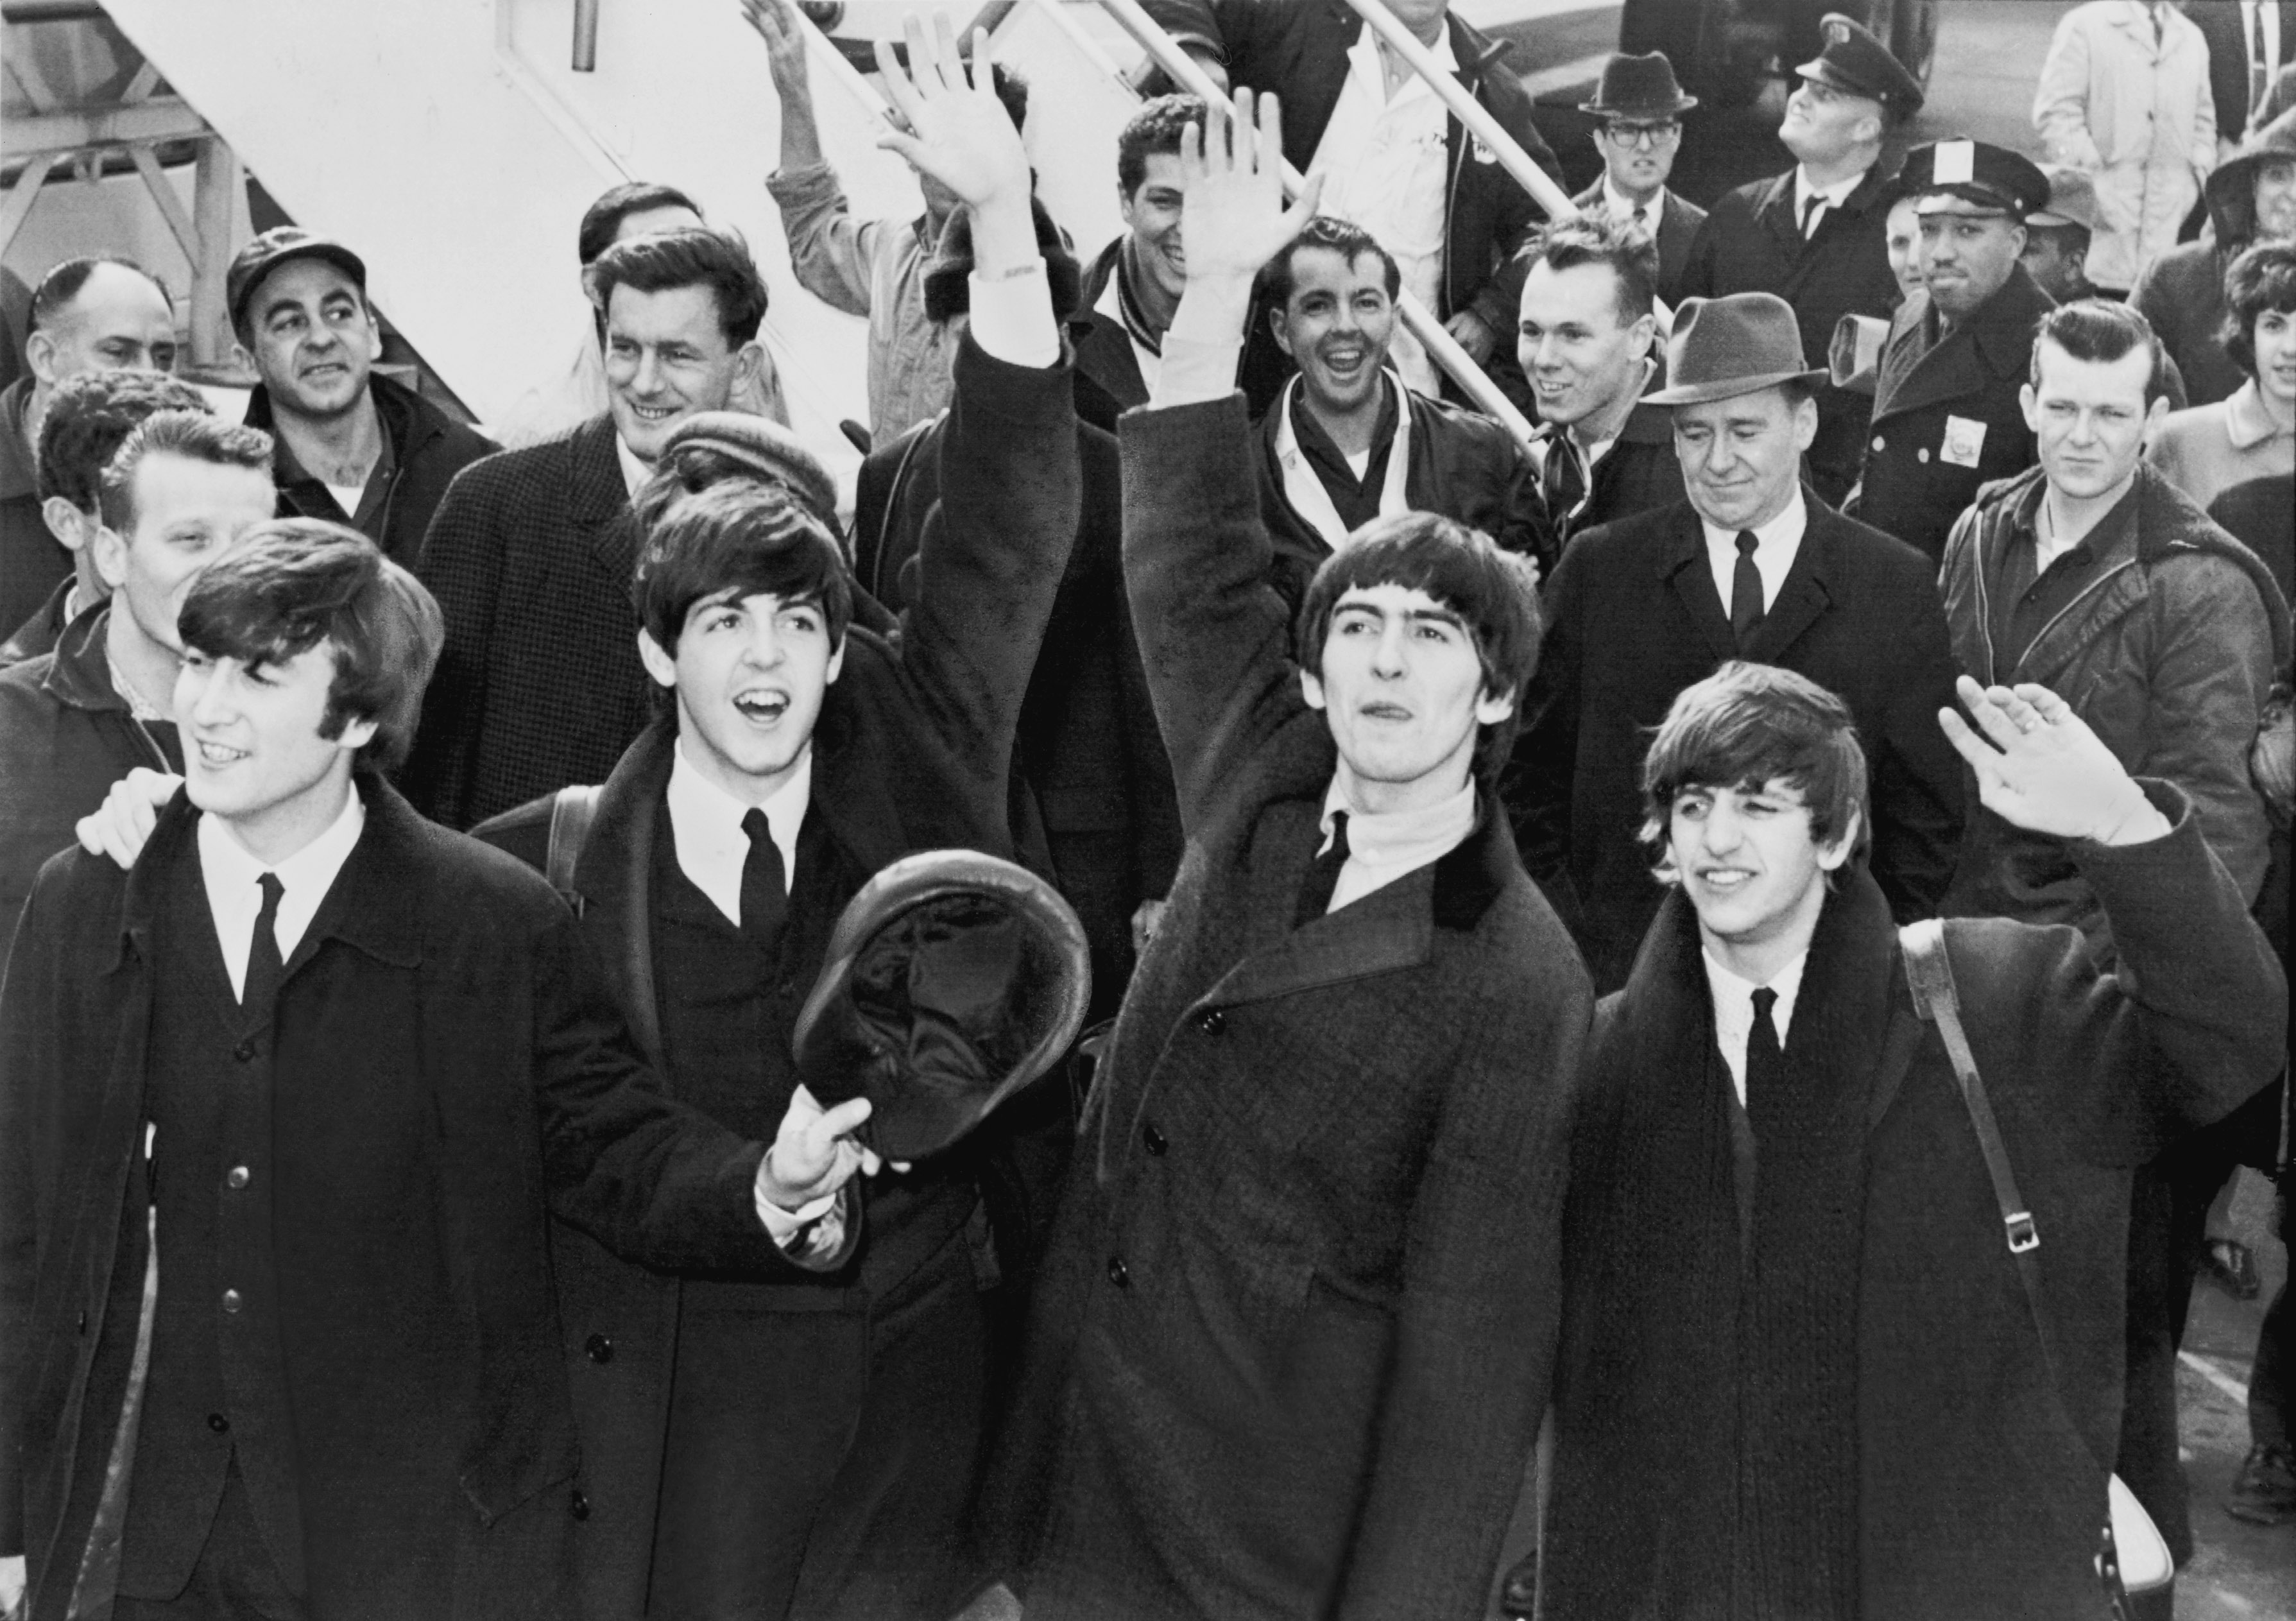 Fact: 1 in 4 Beatles is the Taxman